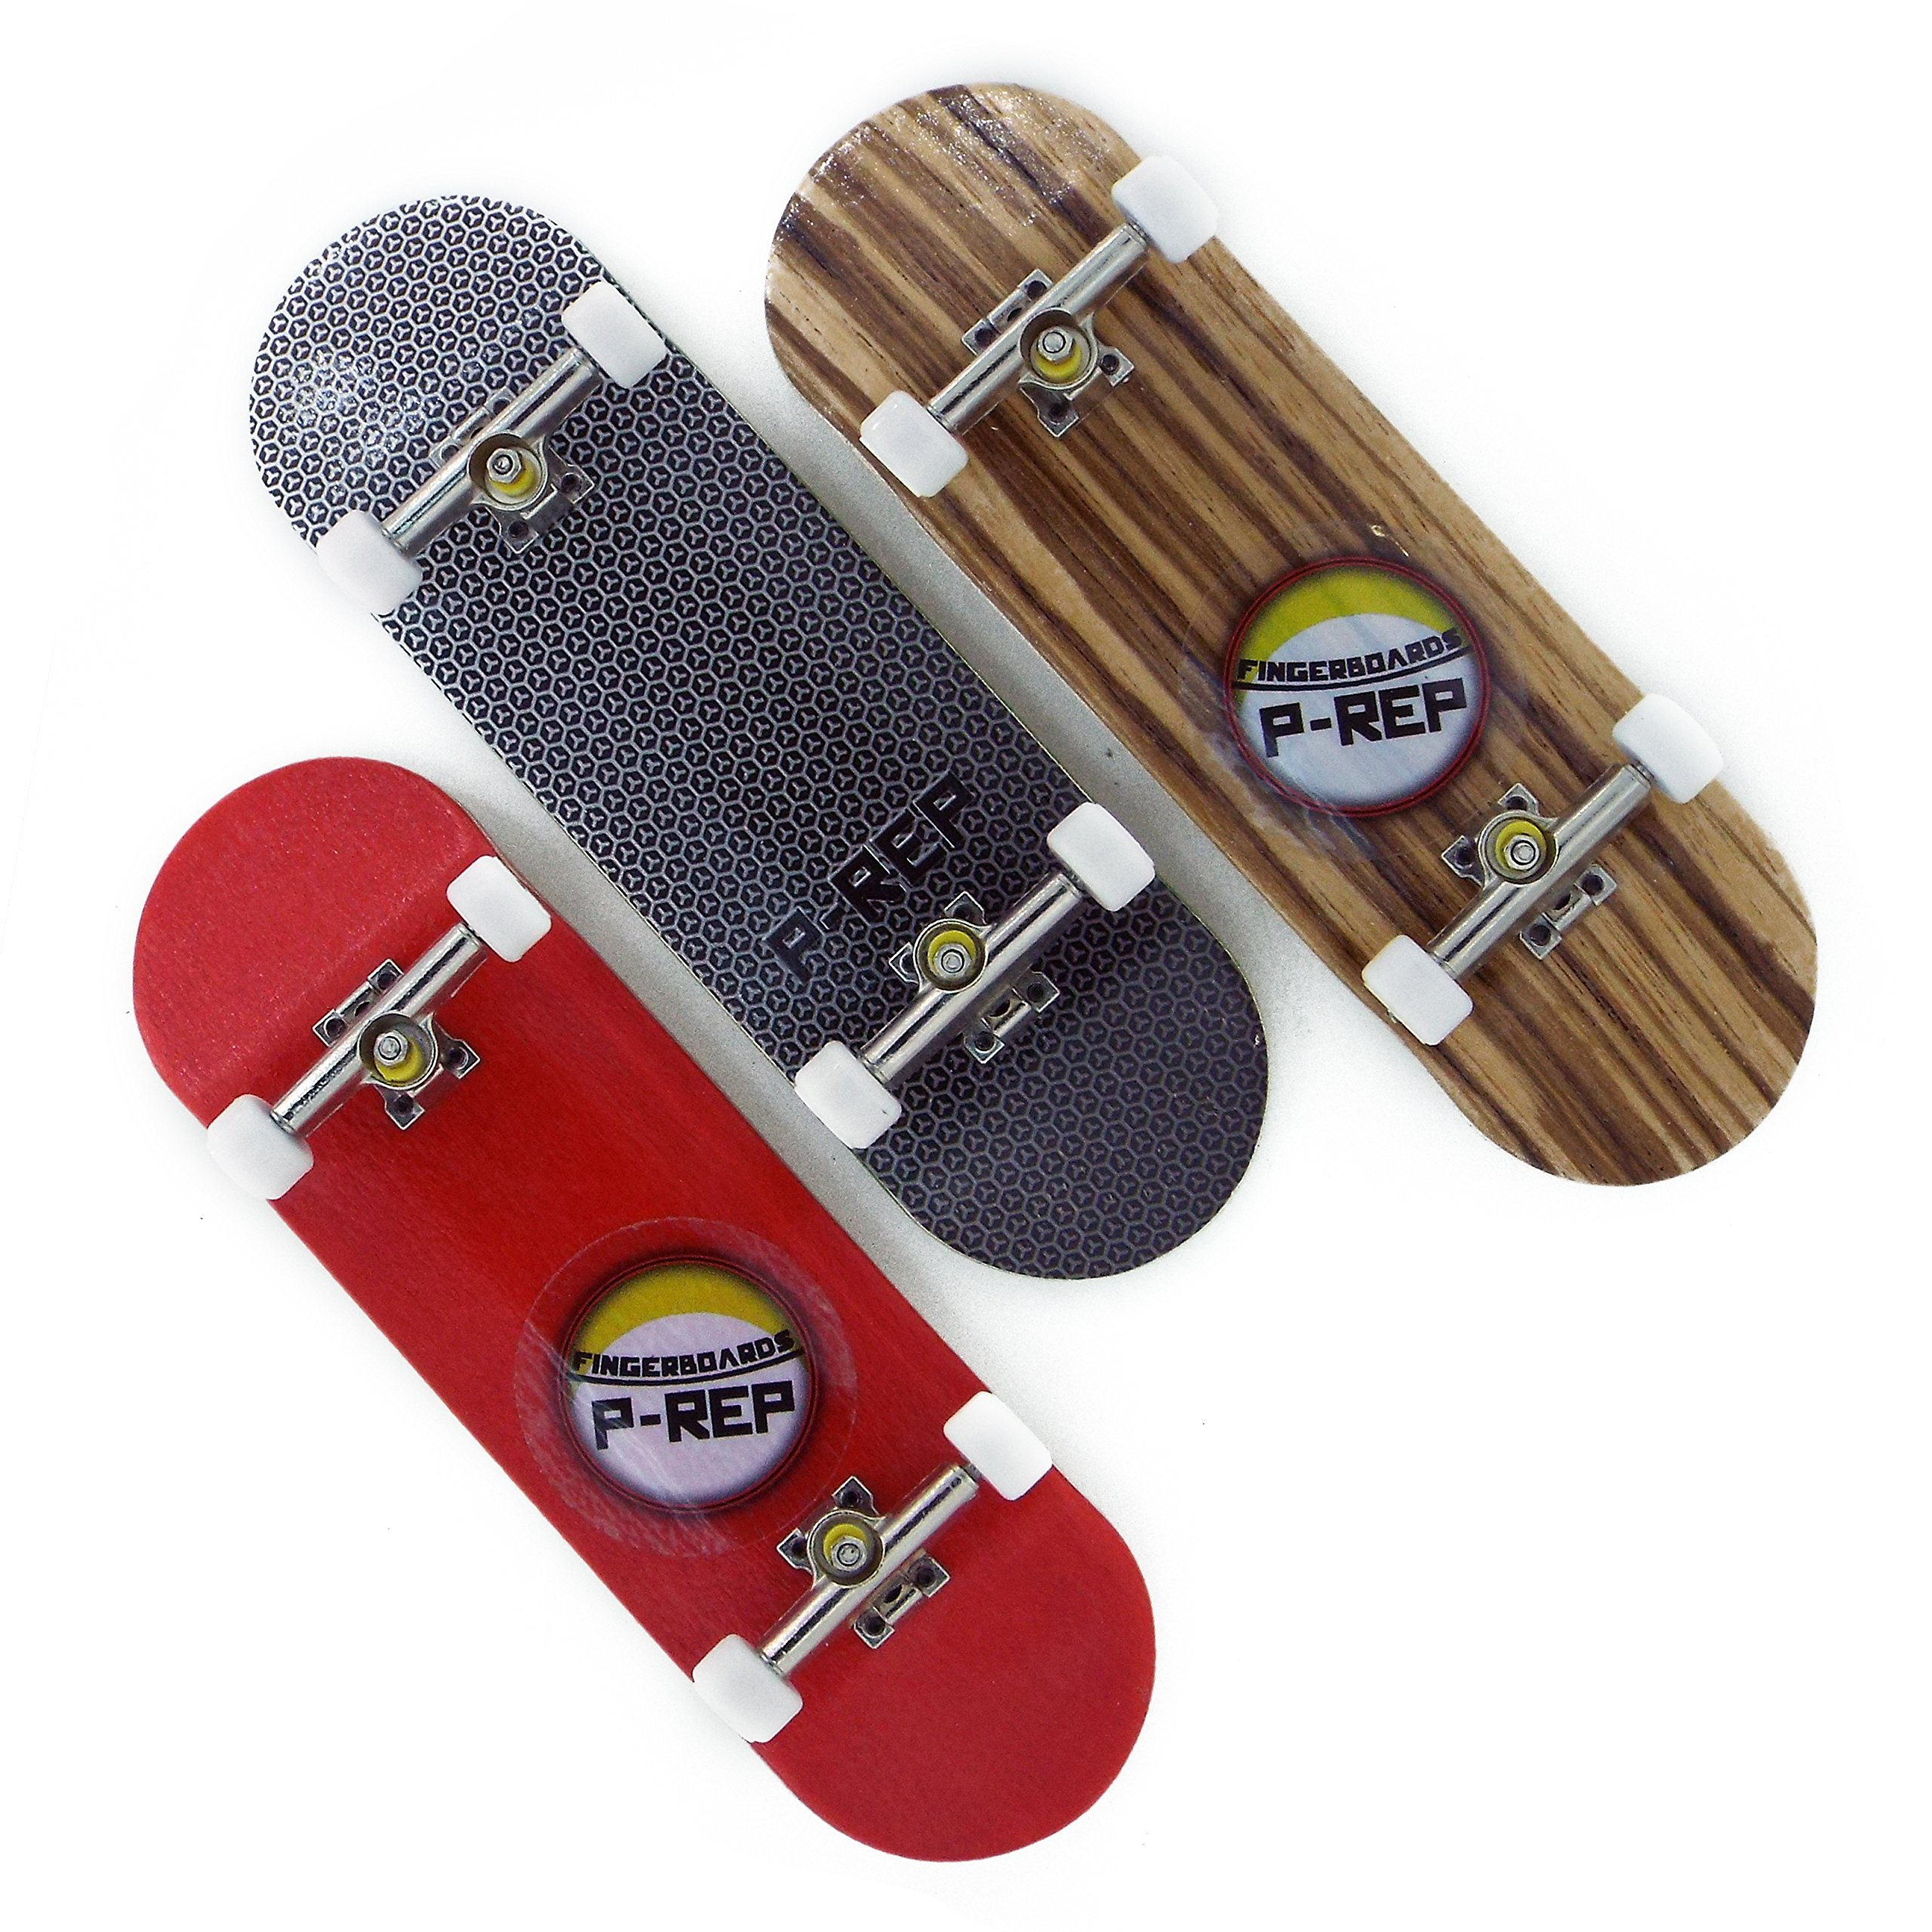 Peoples Republic P-REP Starter Combo 1 - 30mm Wooden Fingerboards Set of 3 by Peoples Republic